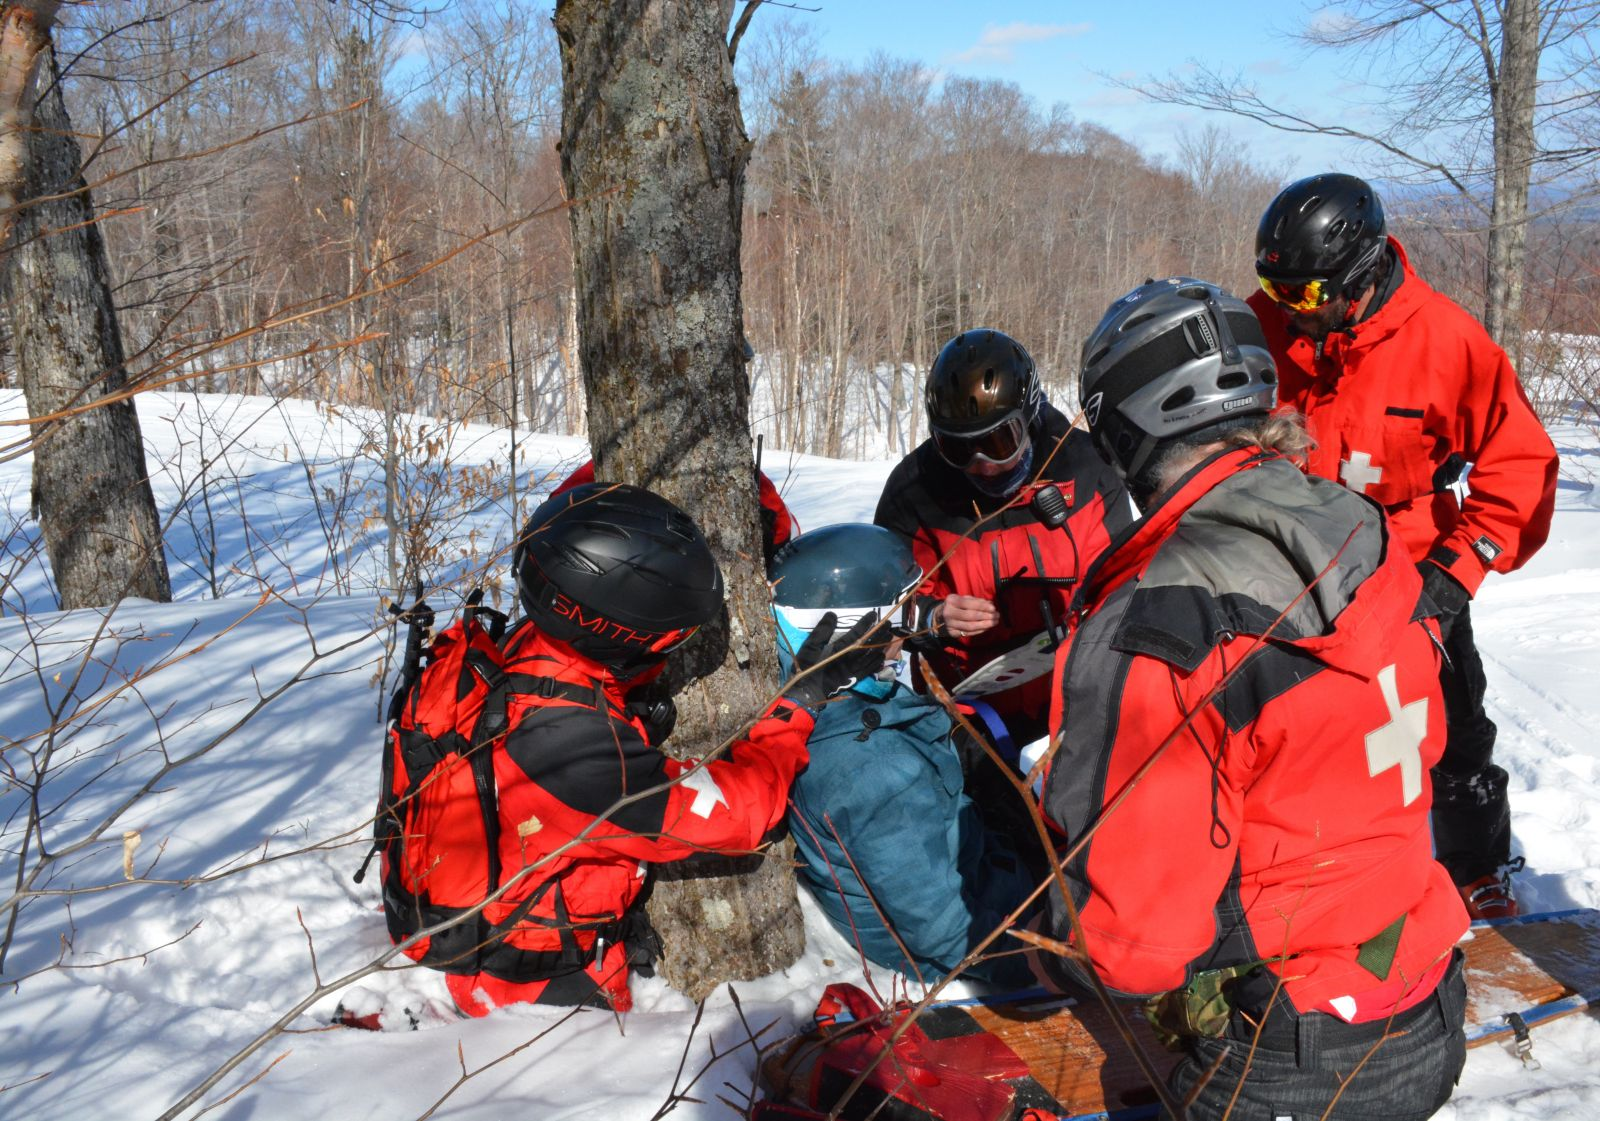 A team of Mitch Harriman, Anne Maltais, Adam Hurteau, and Dan King work together on training scenario two in the woods off of the Lift Line trail.